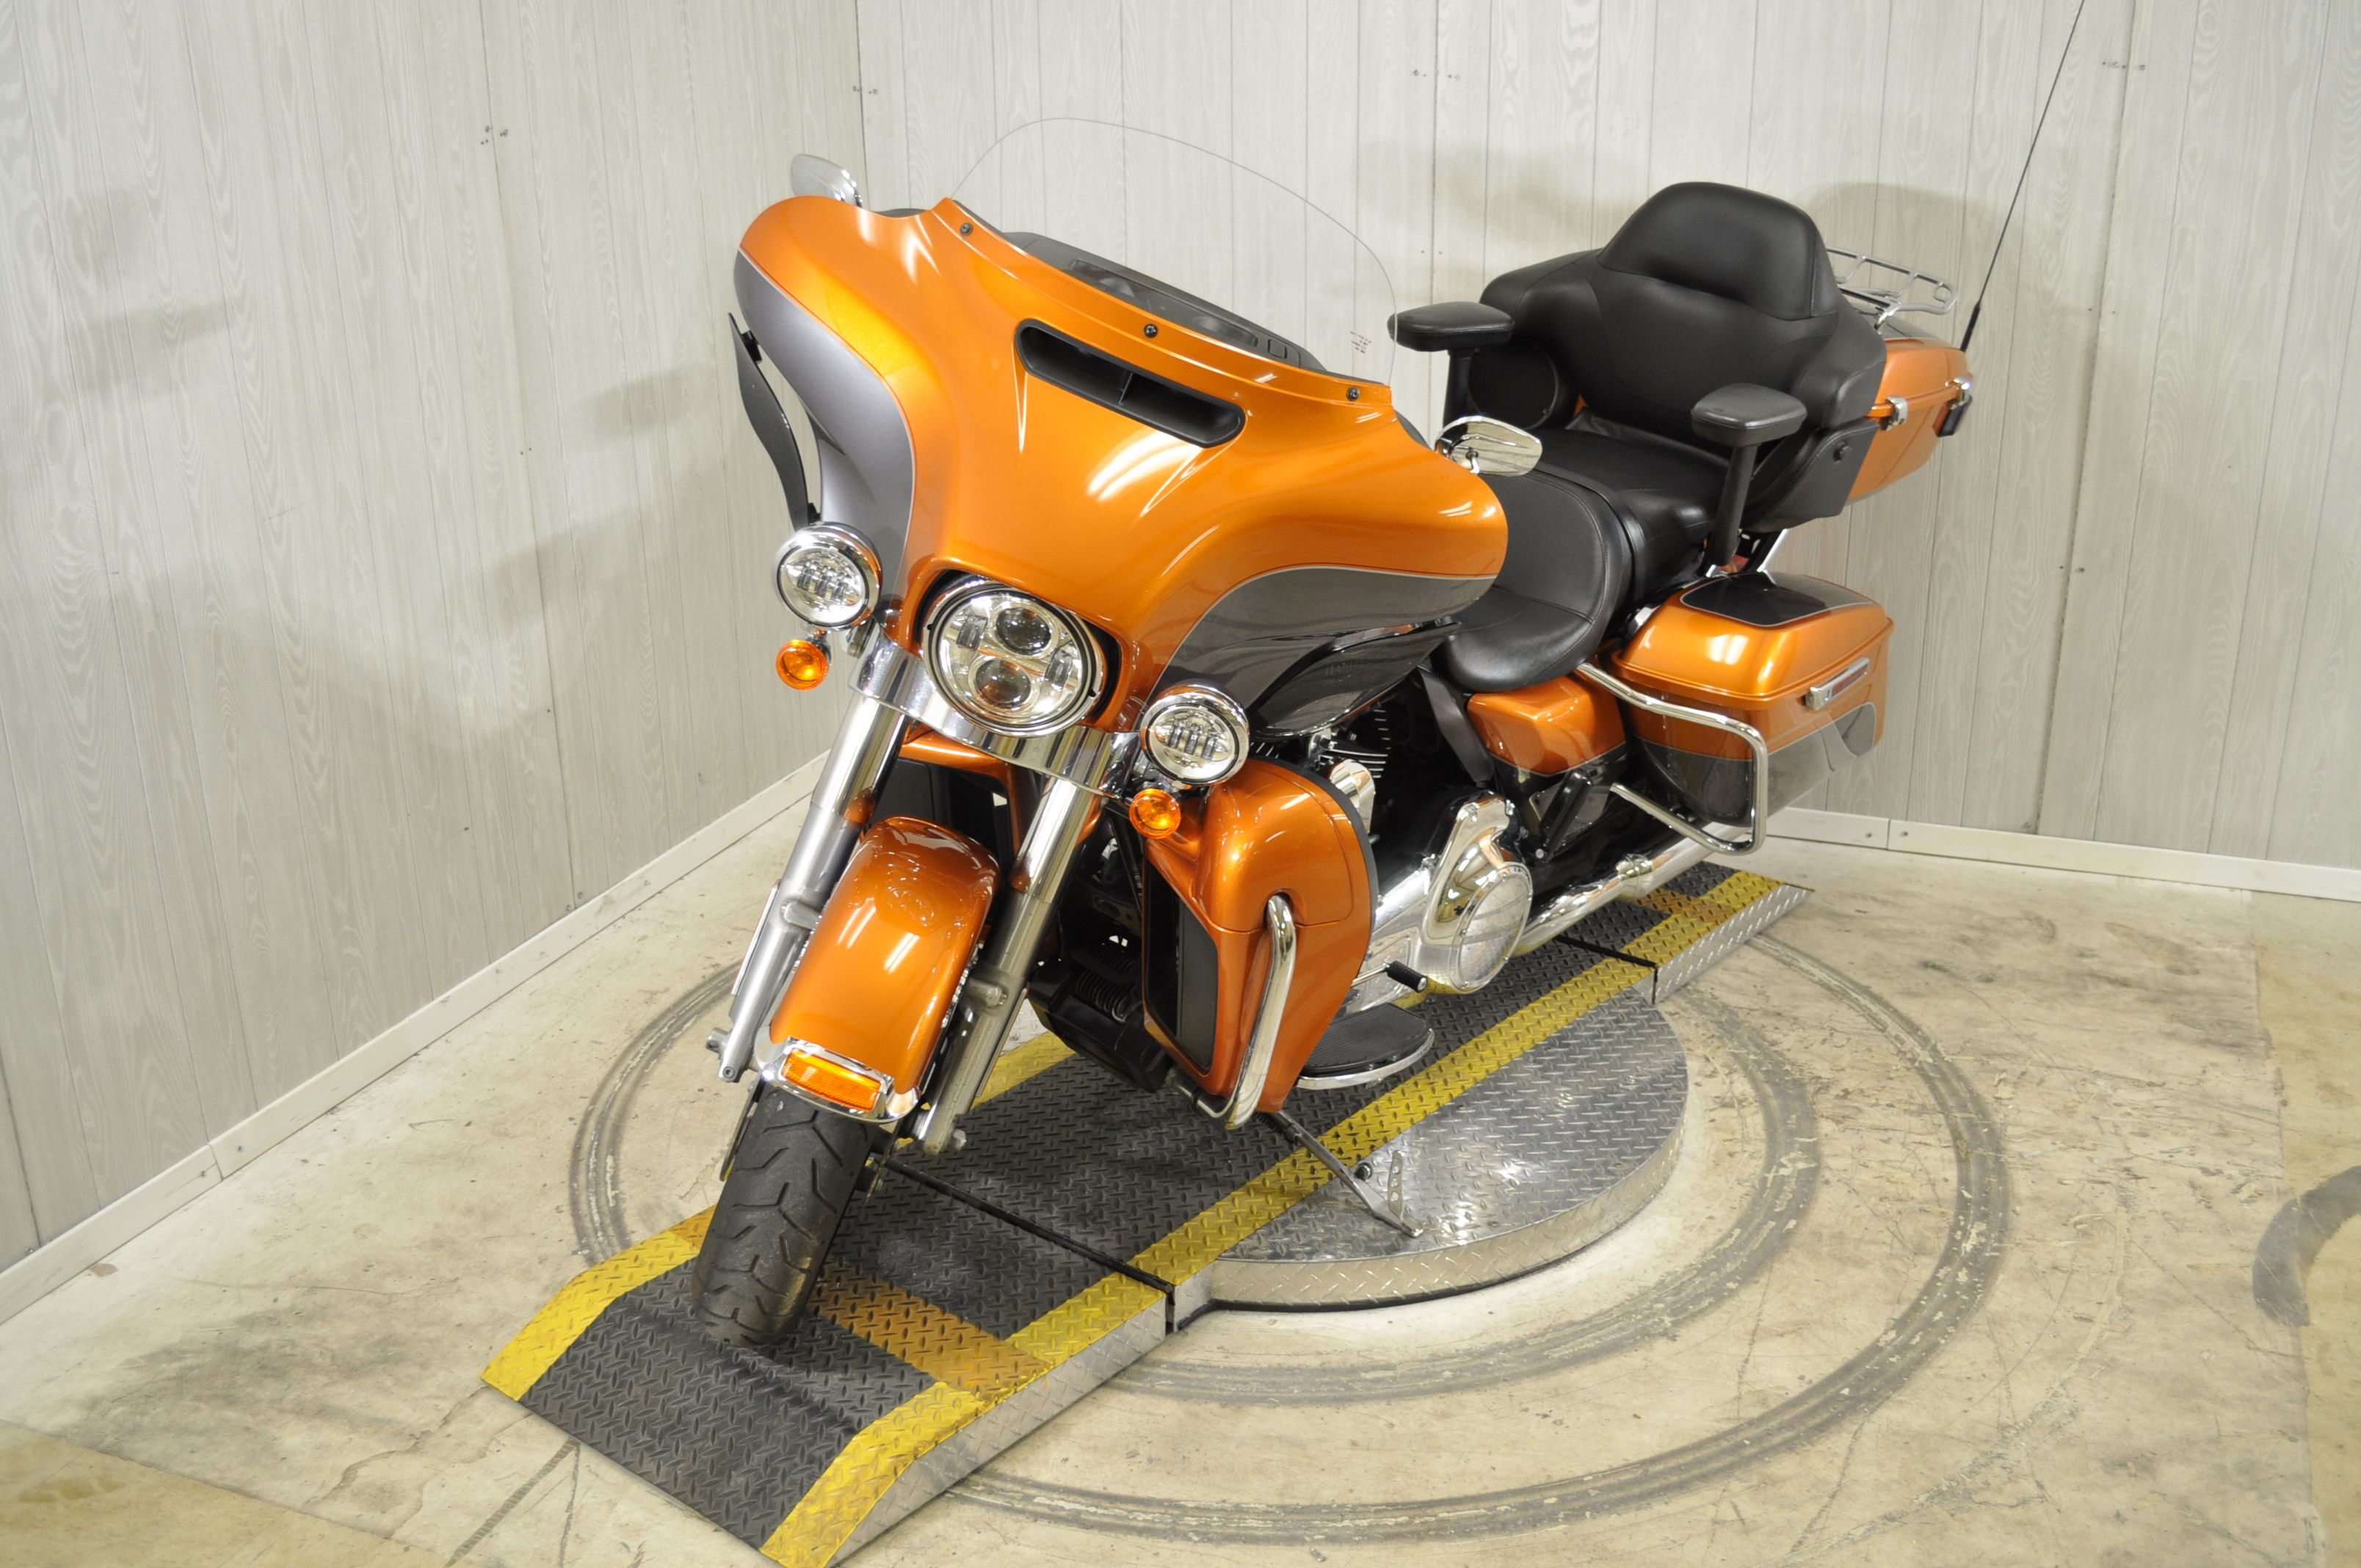 Pre-Owned 2016 Harley-Davidson Electra Glide Ultra Classic Low FLHTCUL